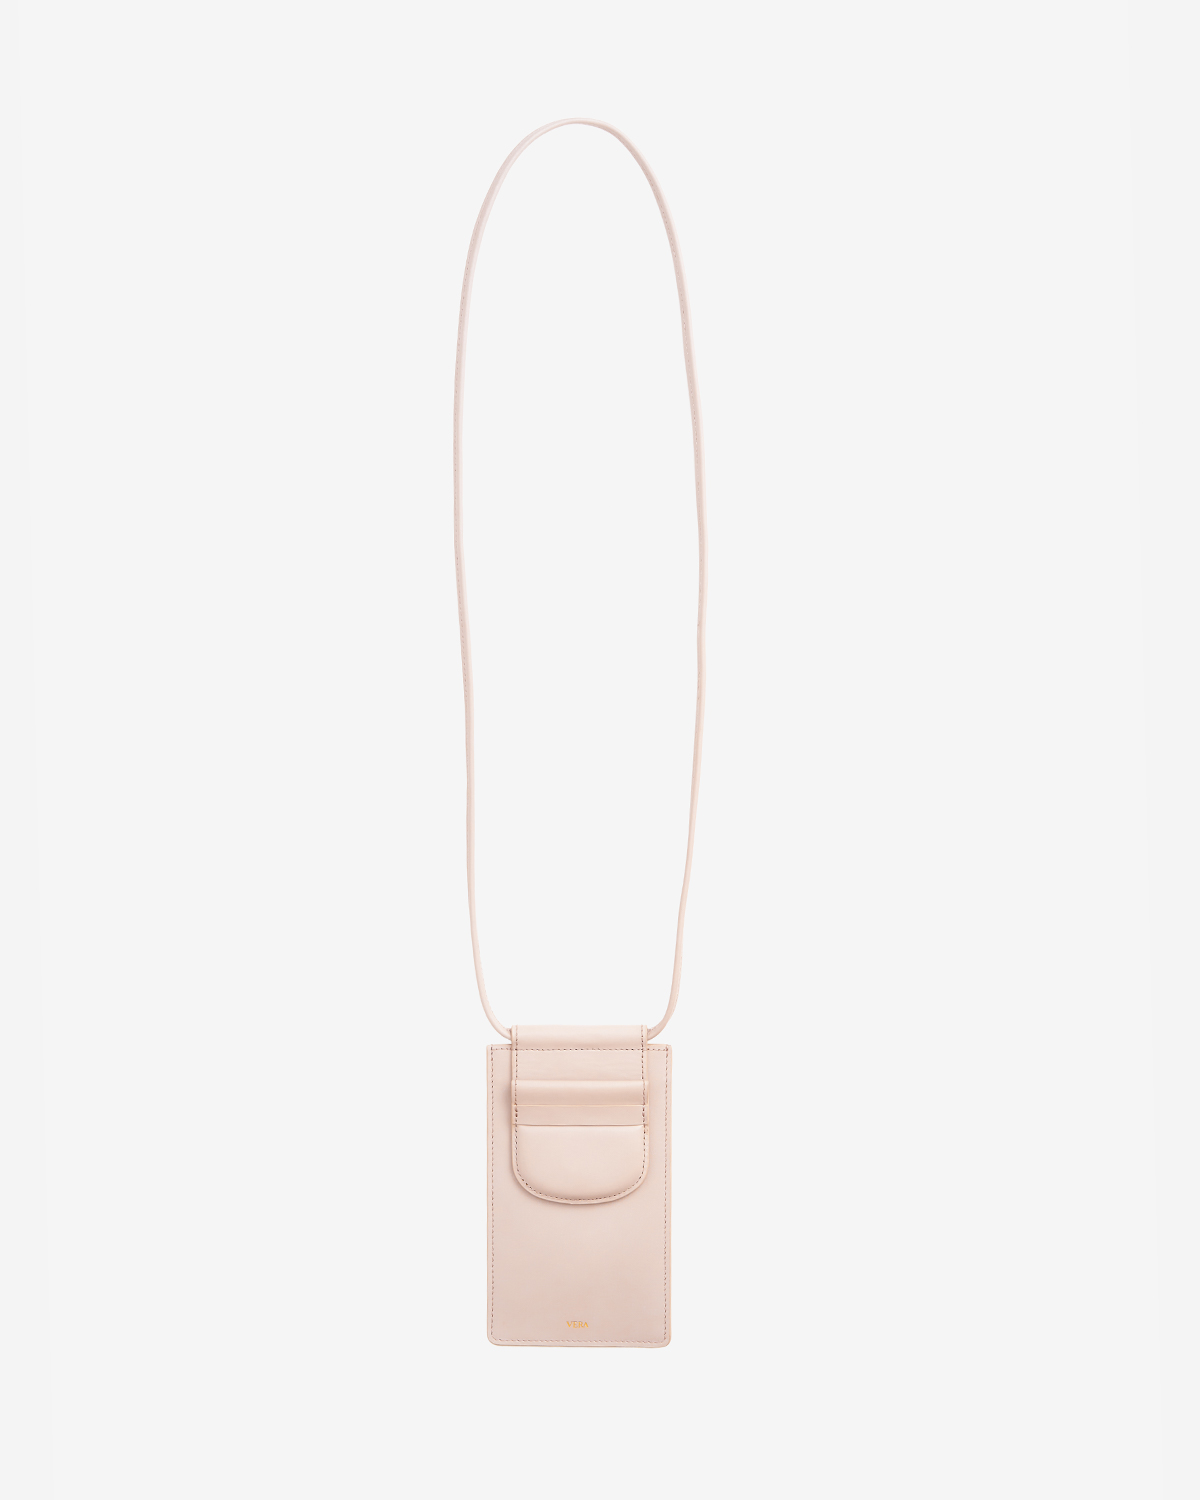 VERA Best Millie Pouch in Barely Nude